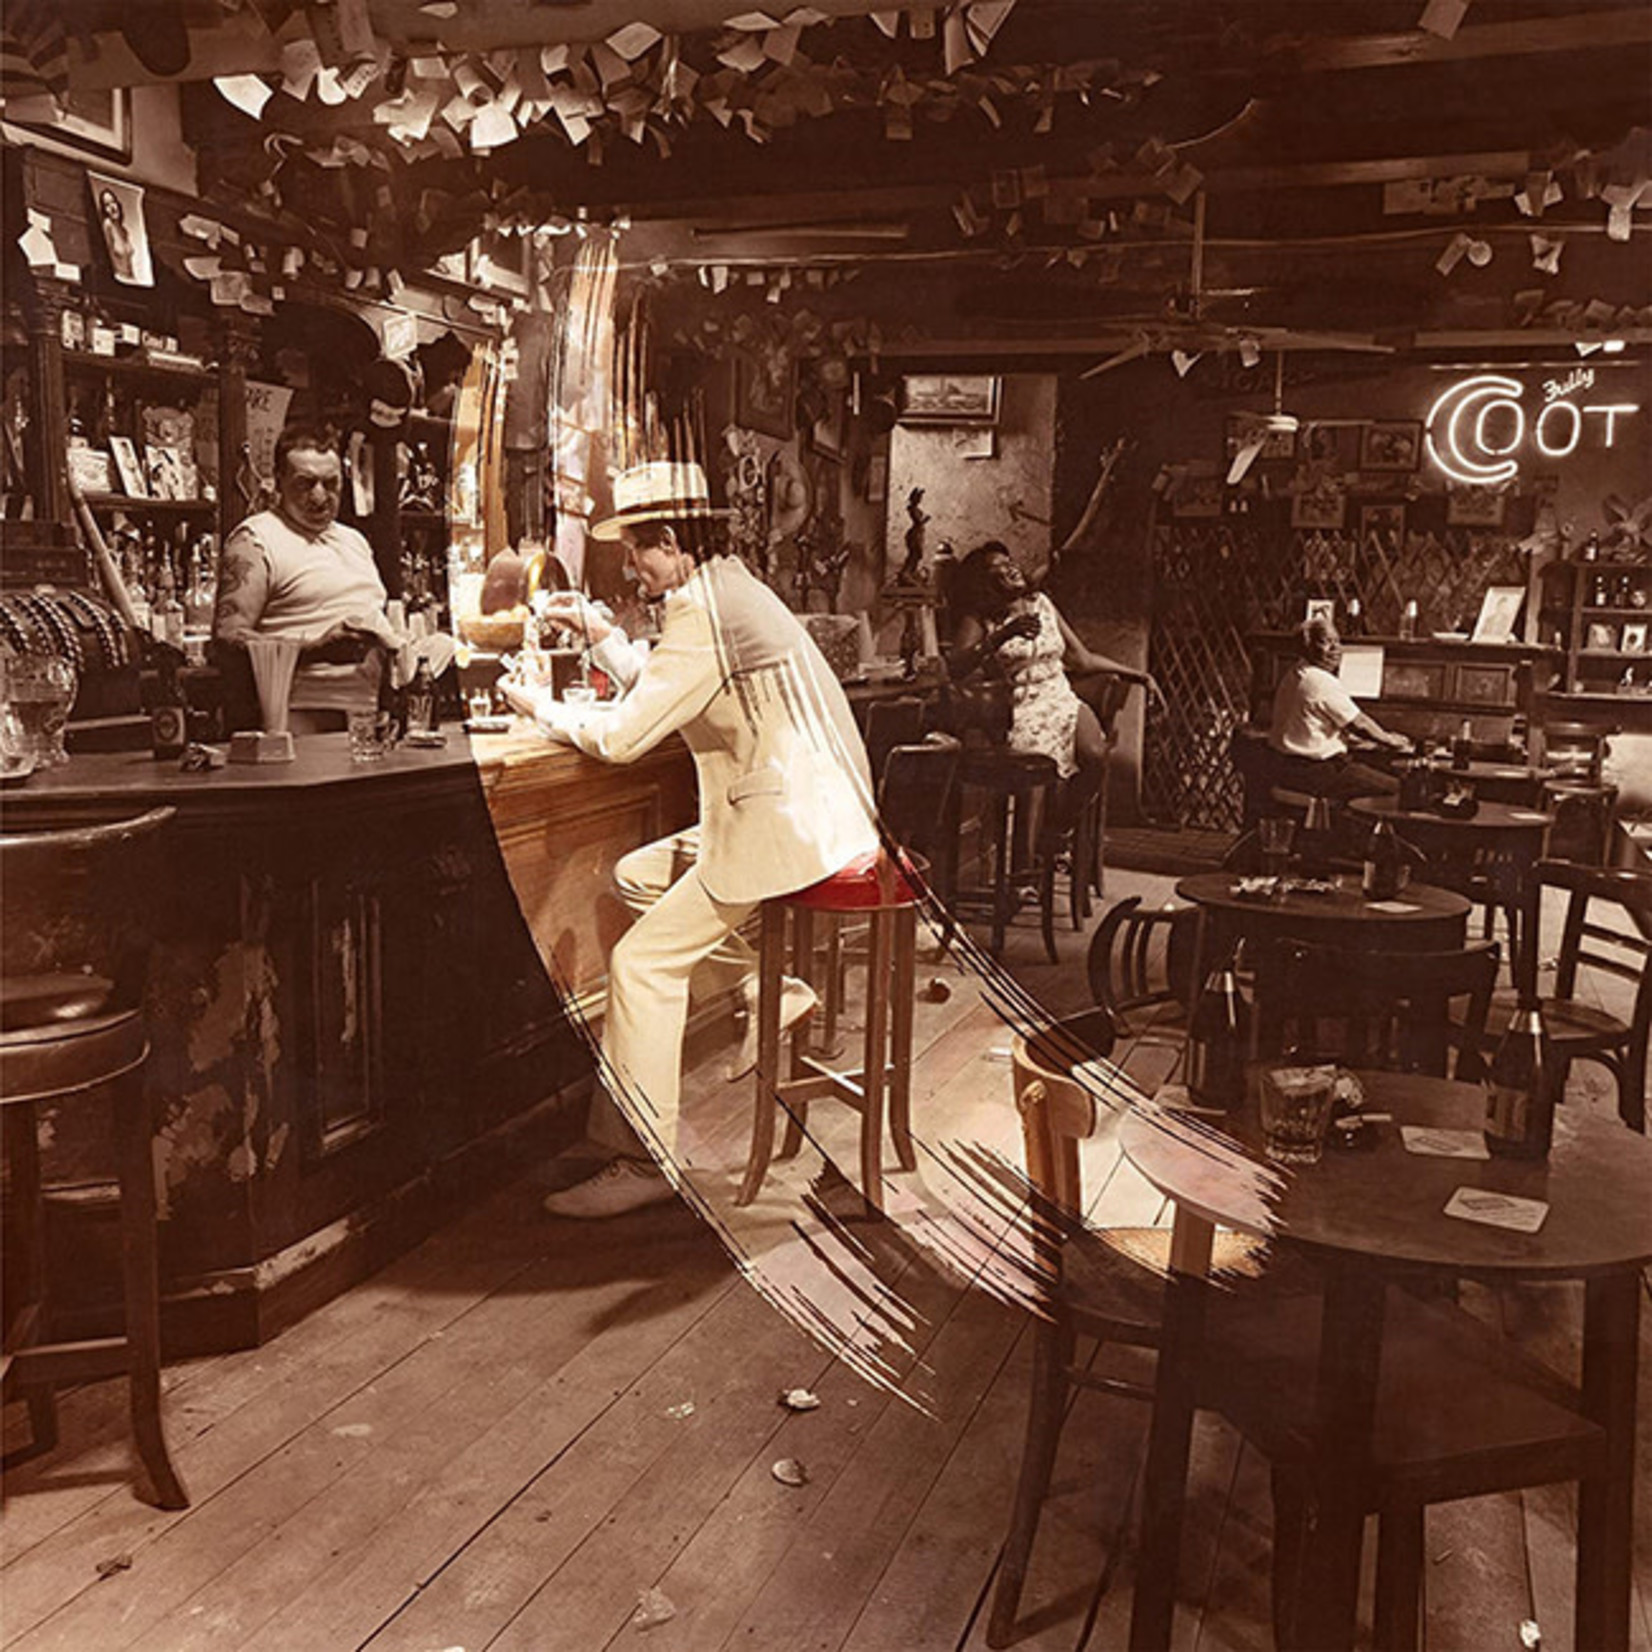 [New] Led Zeppelin: In Through The Out Door (2015 remaster)